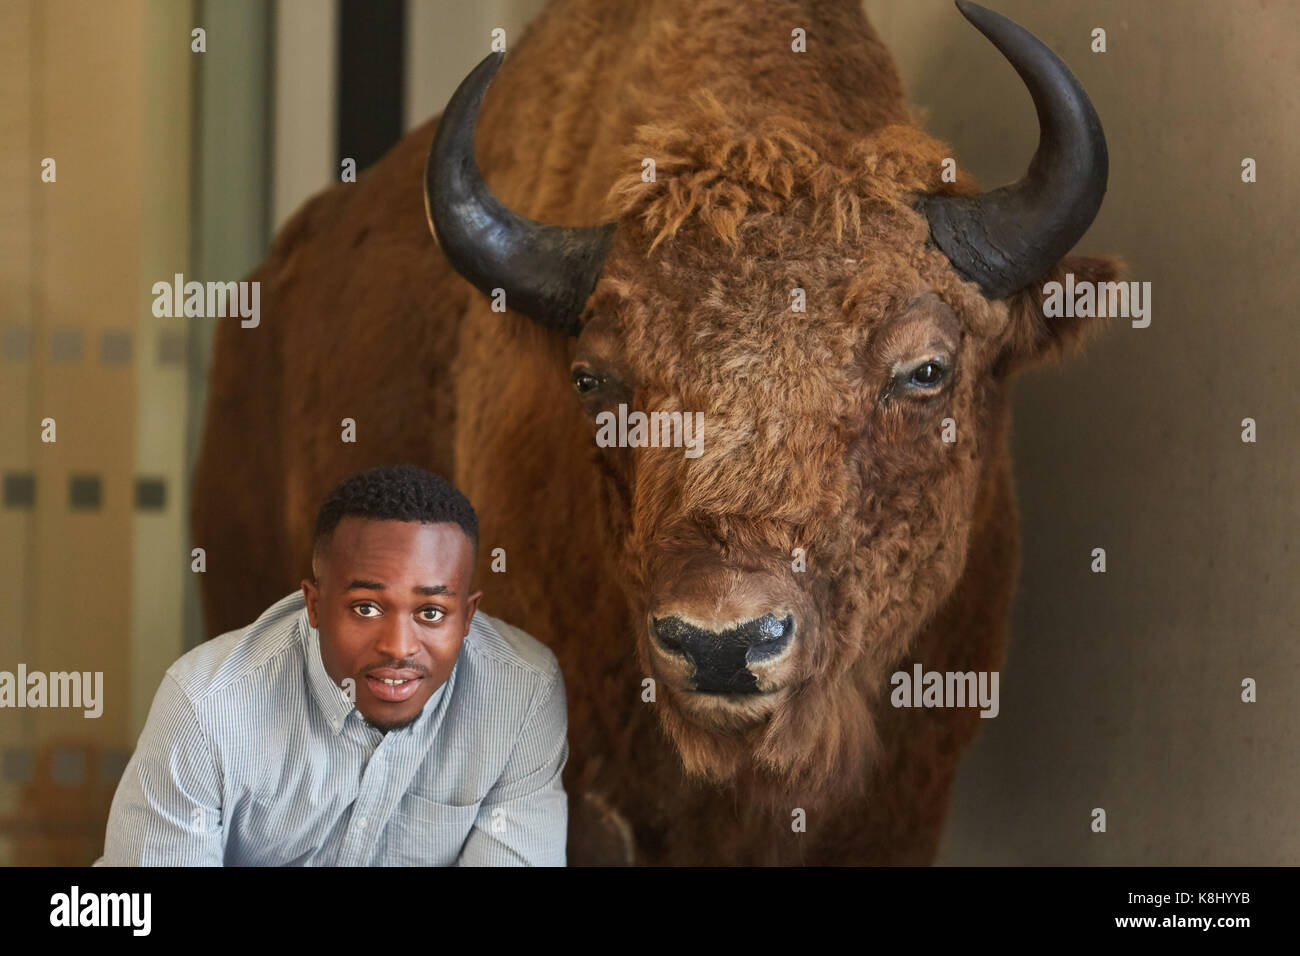 Breeding bull animal and student of agronomy or agriculture - Stock Image